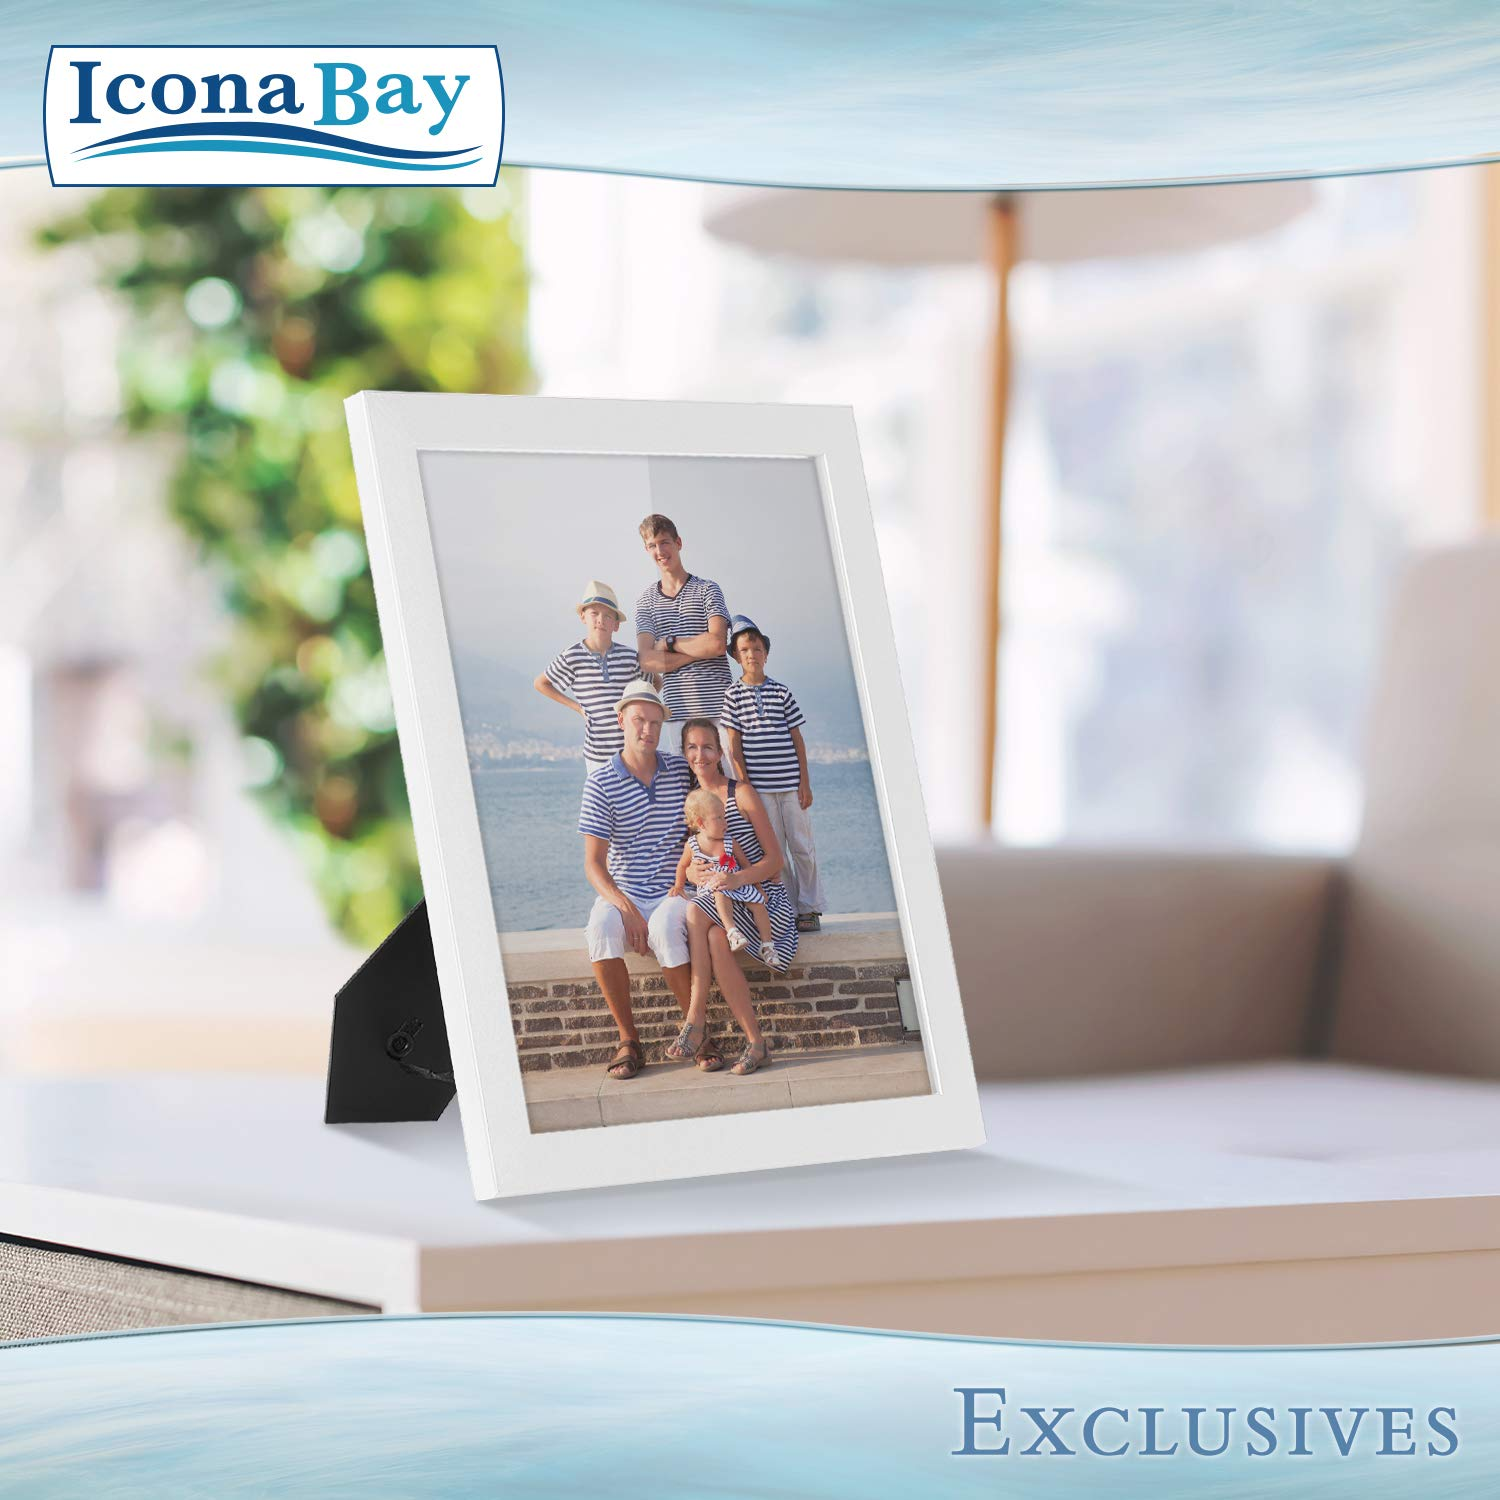 Icona Bay 8x10 Picture Frame (6 Pack, White), White Sturdy Wood Composite Photo Frame 8 x 10, Wall or Table Mount, Set of 6 Exclusives Collection by Icona Bay (Image #5)